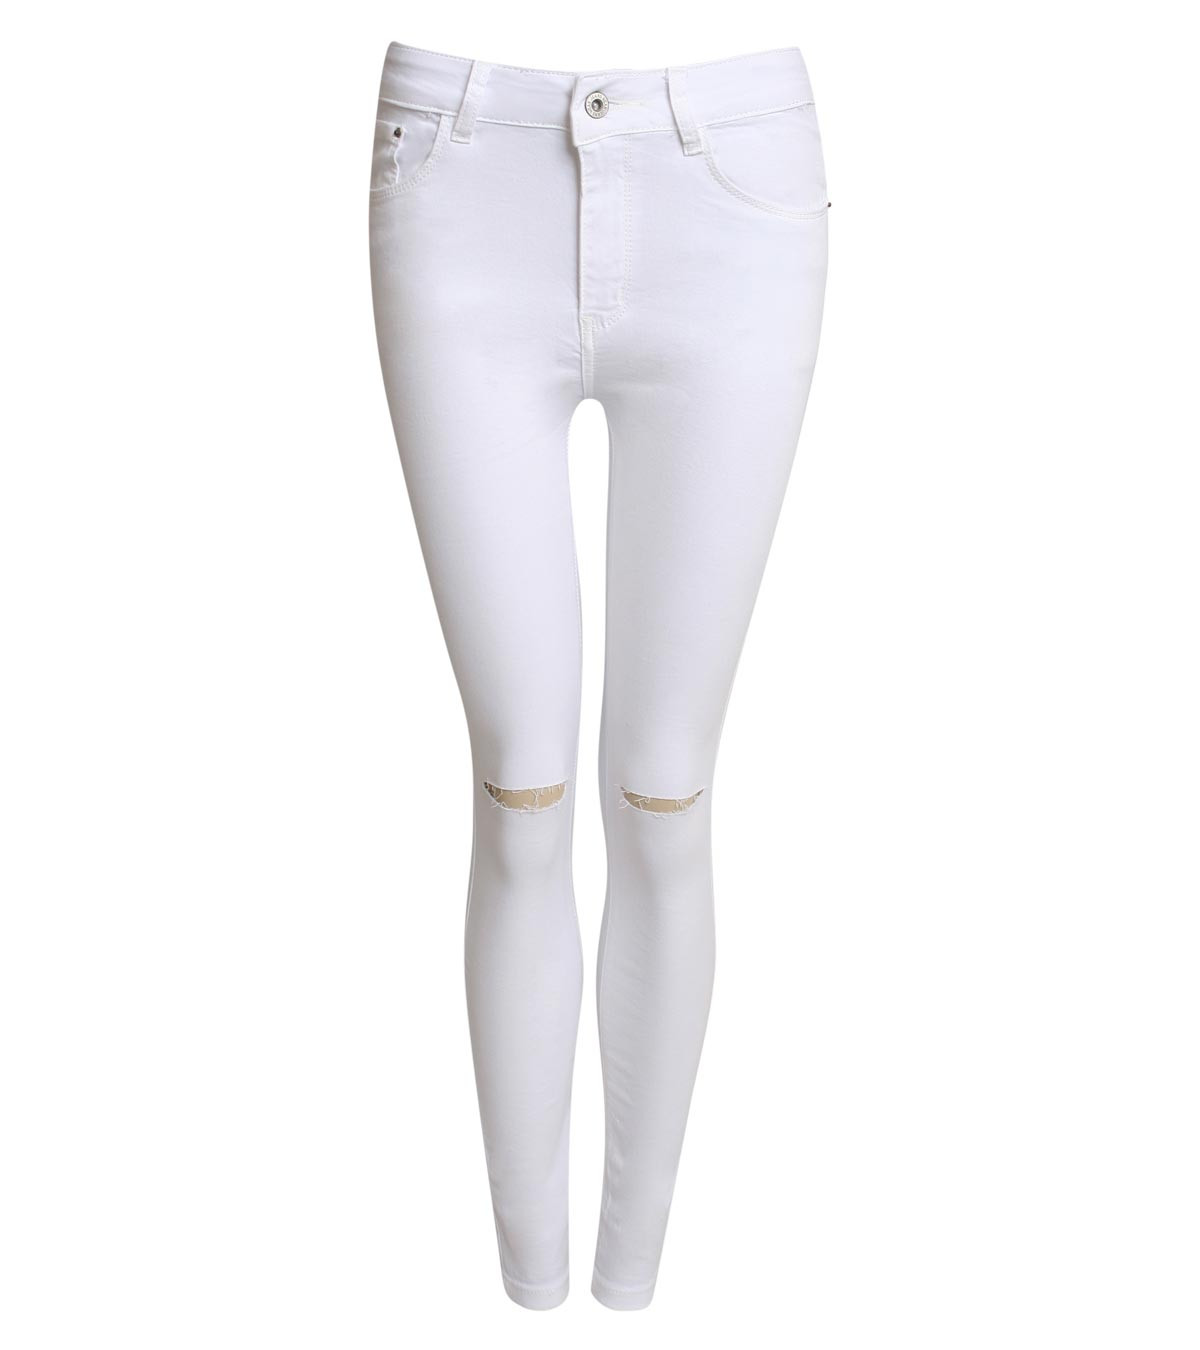 High Waist Ripped Knee Skinny Jeans in White – p i l o t